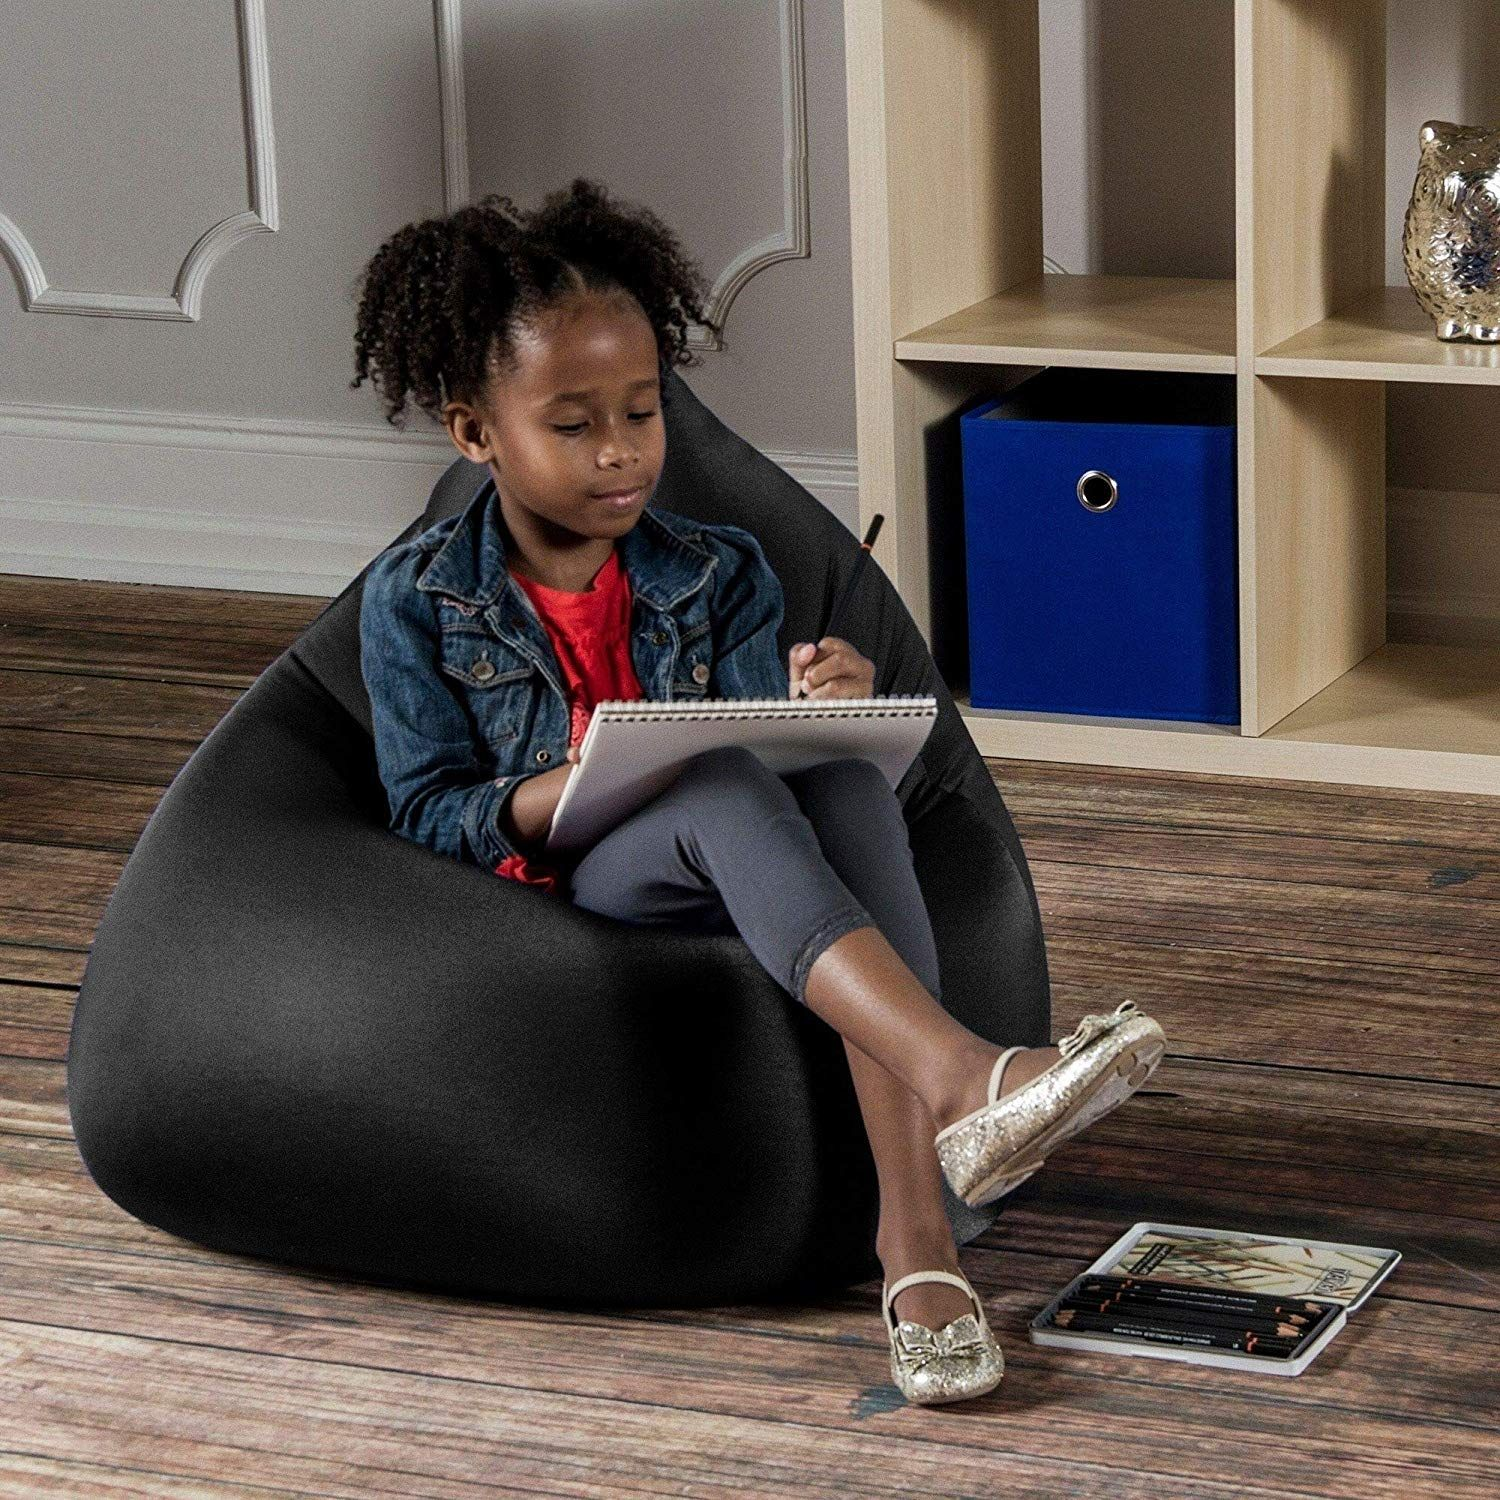 black friday bean bag chairs realspace chair mat giant for adults viral designs beanbag